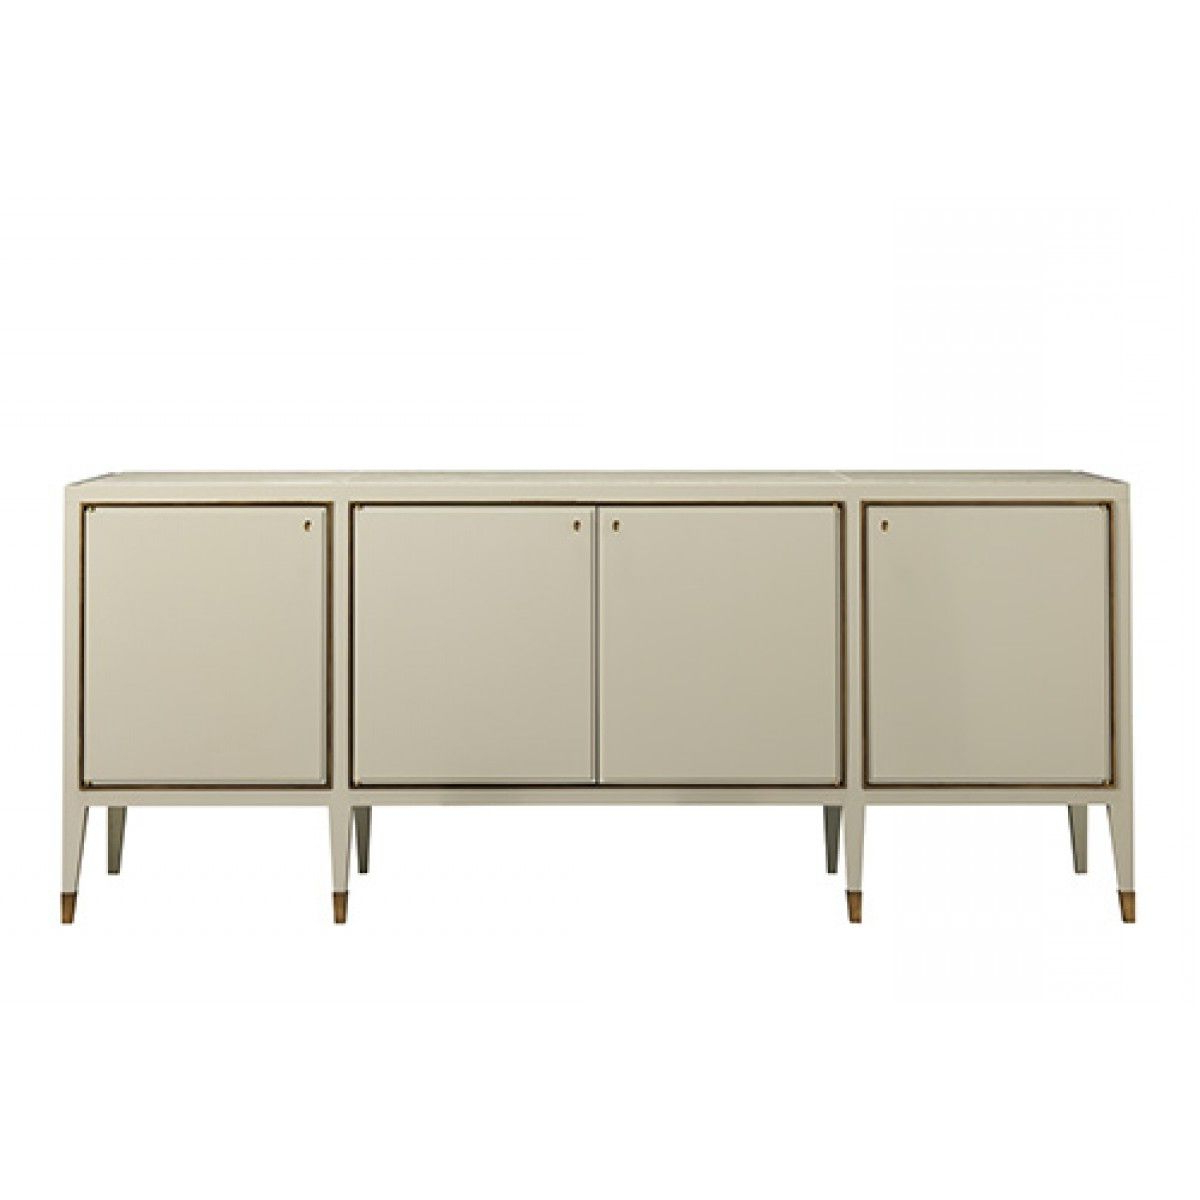 Sideboard Furniture (View 20 of 20)